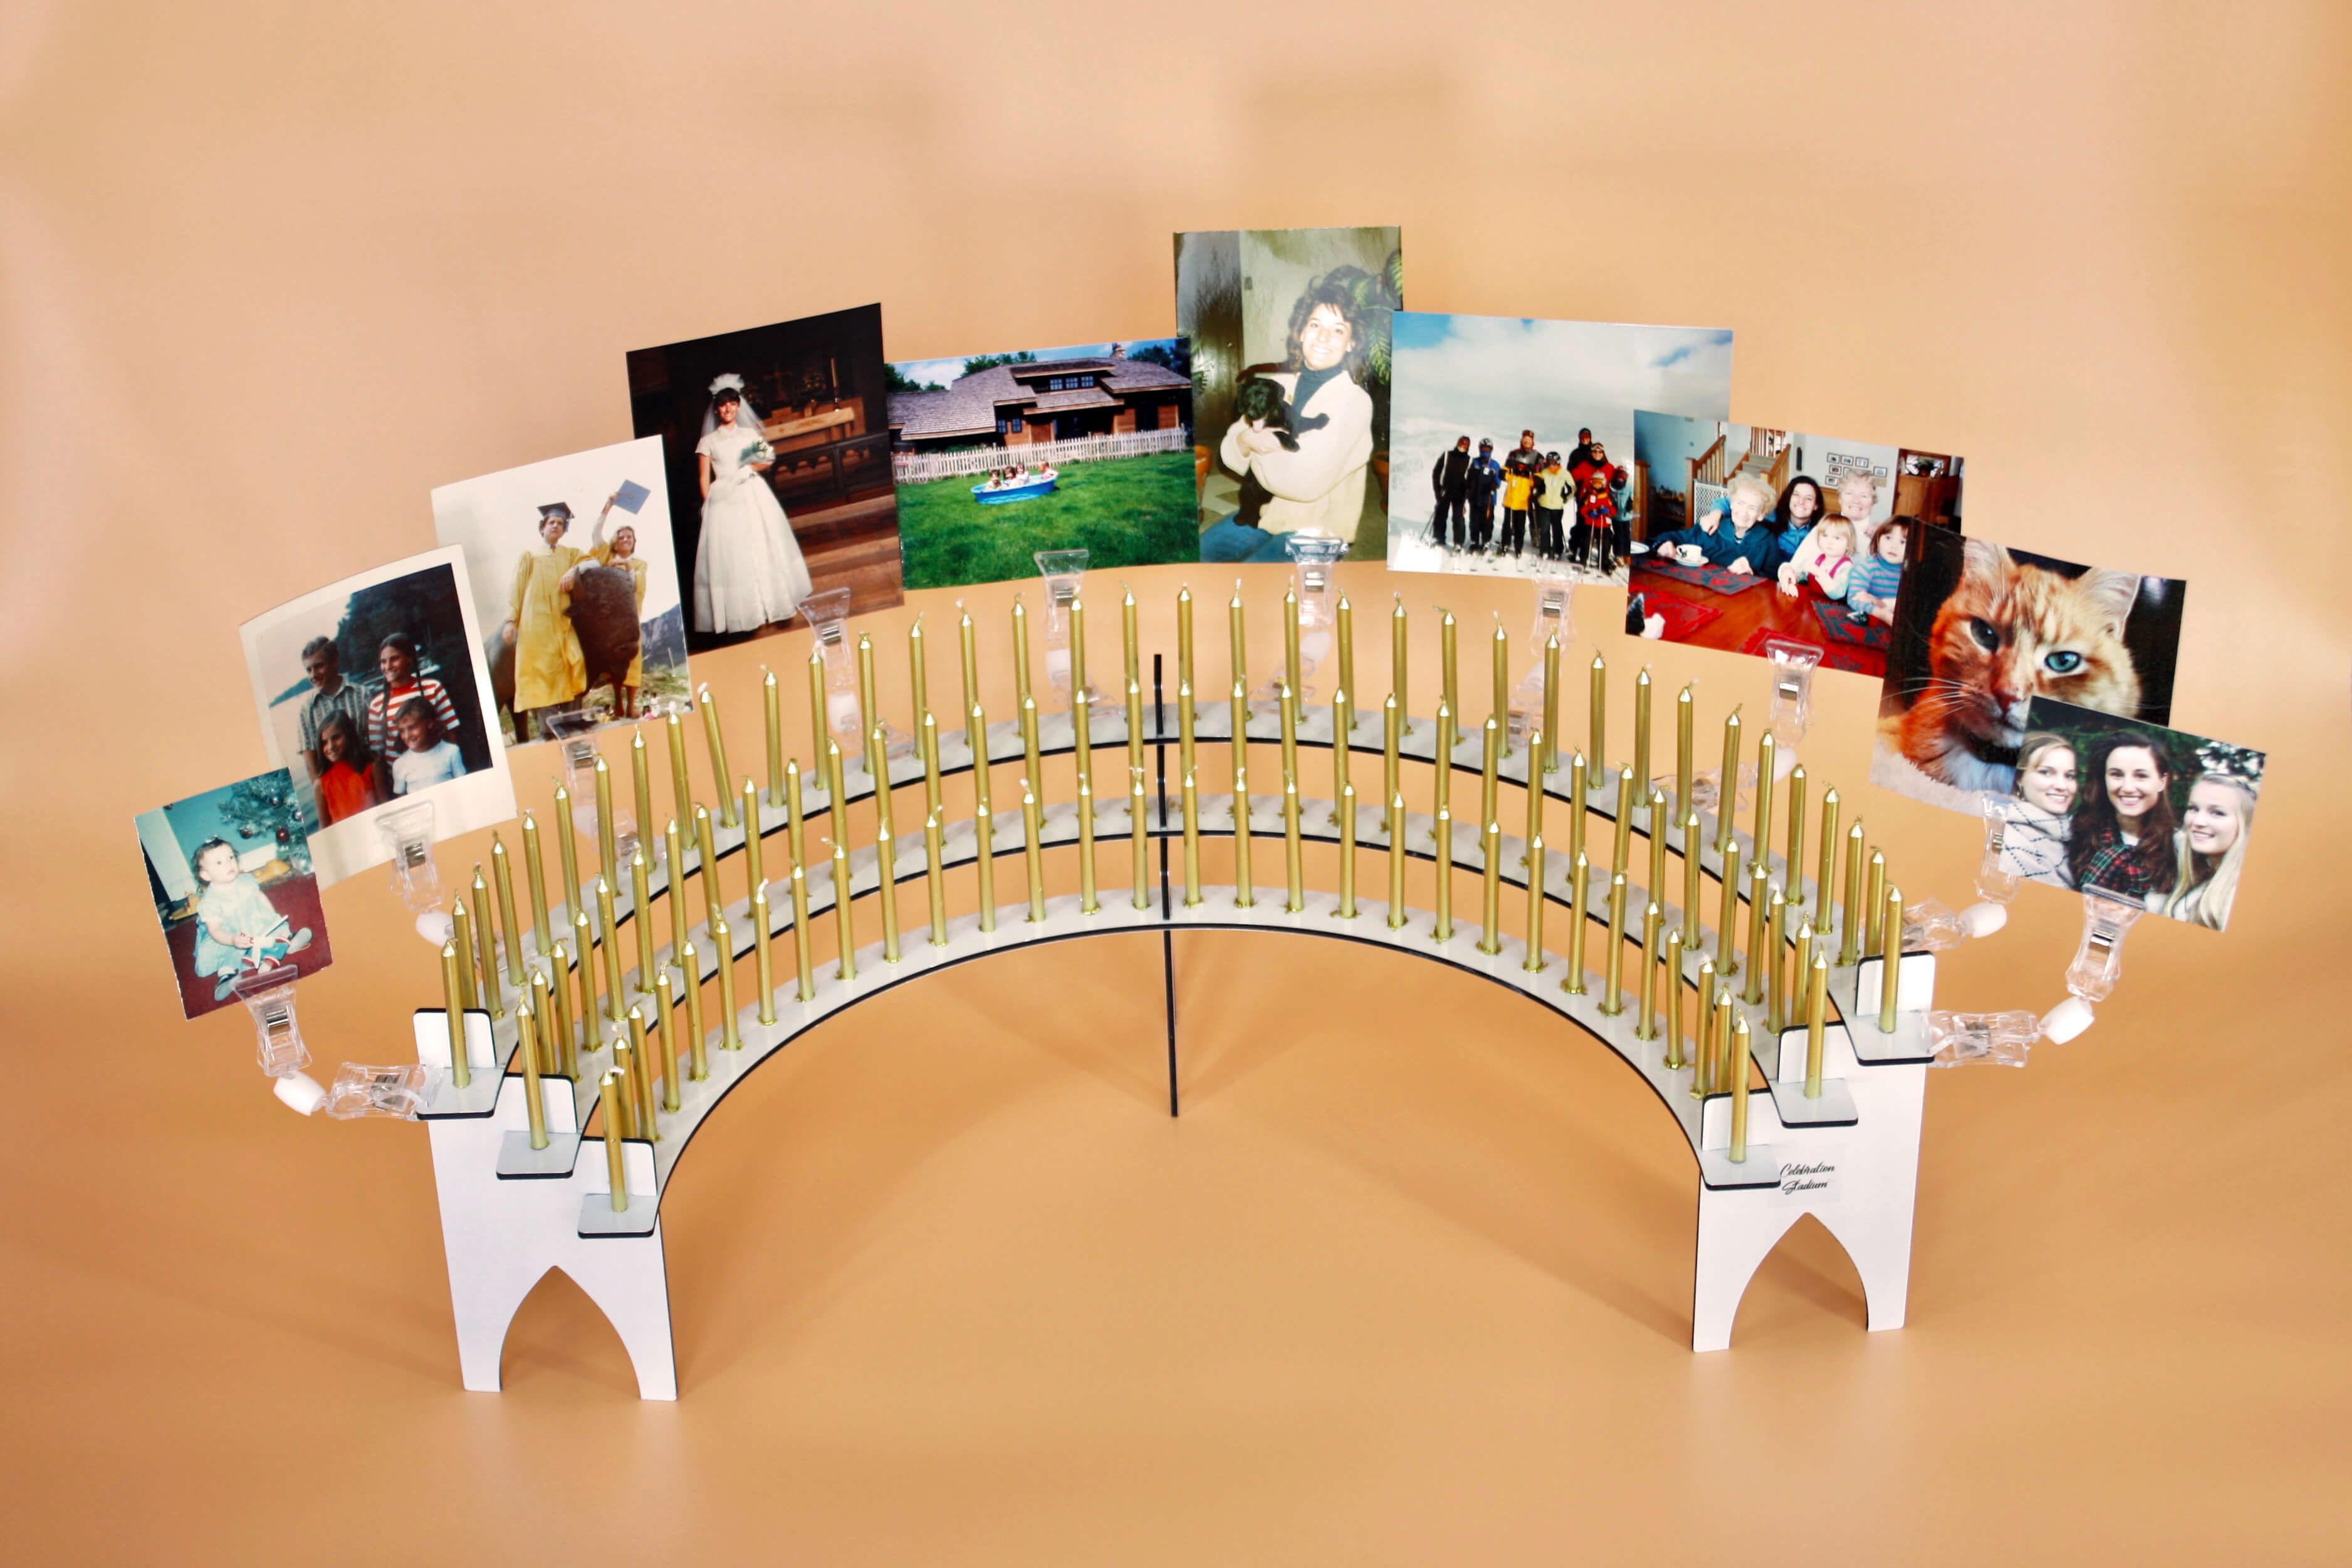 Birthday Party Decorations Using Stadium Clips on the Candle Holder, Featuring Photos Of Birthday Person's Life